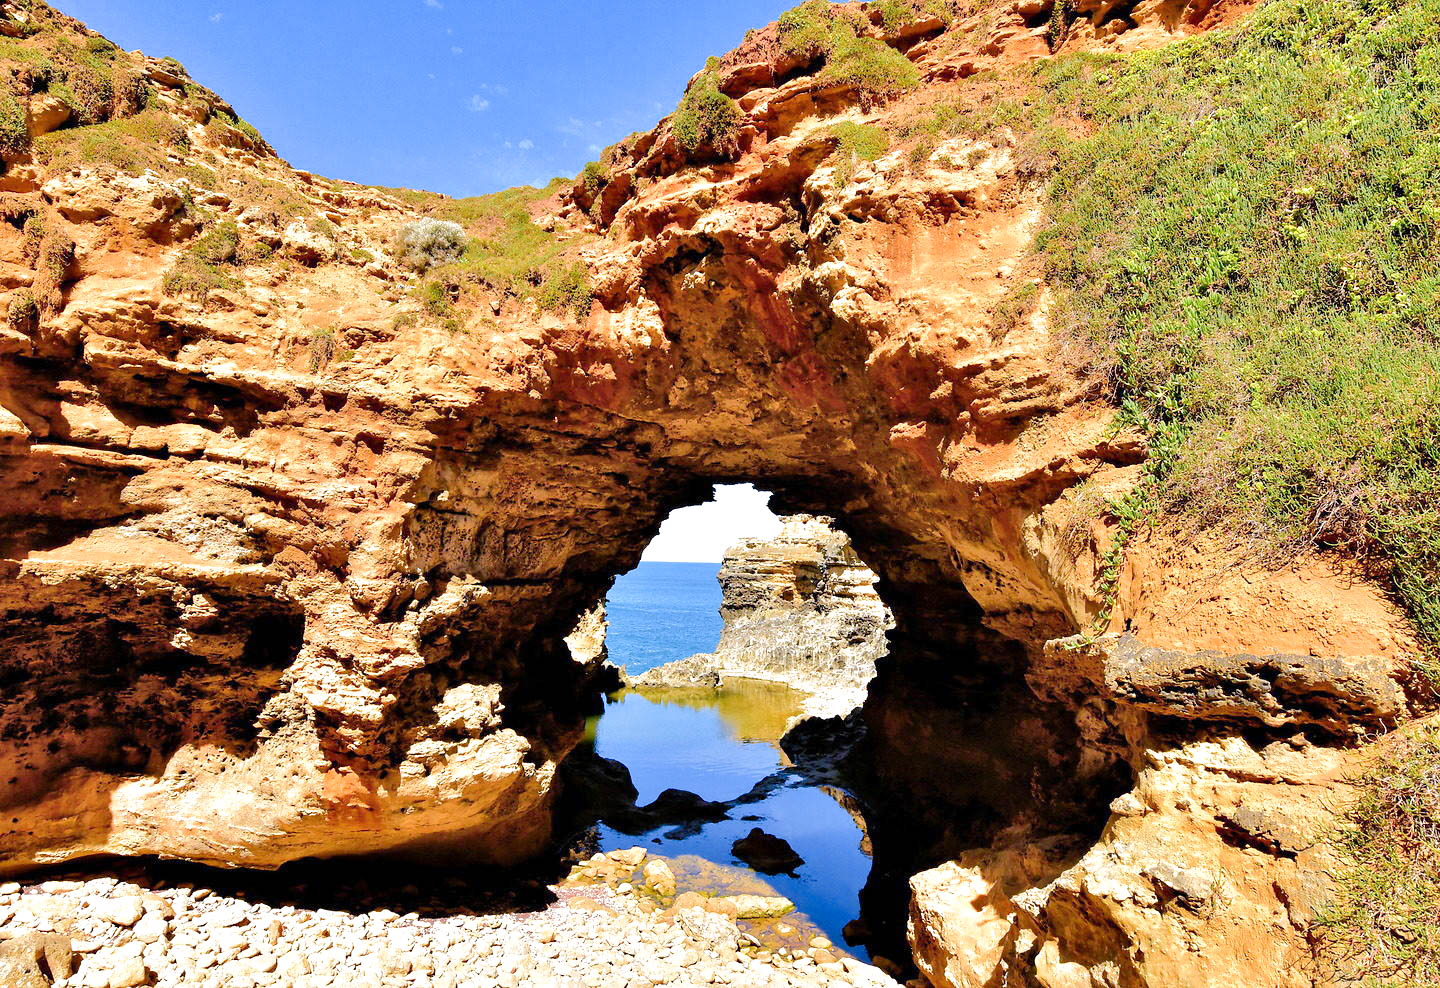 The Grotto Close Up near Peterborough on Great Ocean Road, Australia